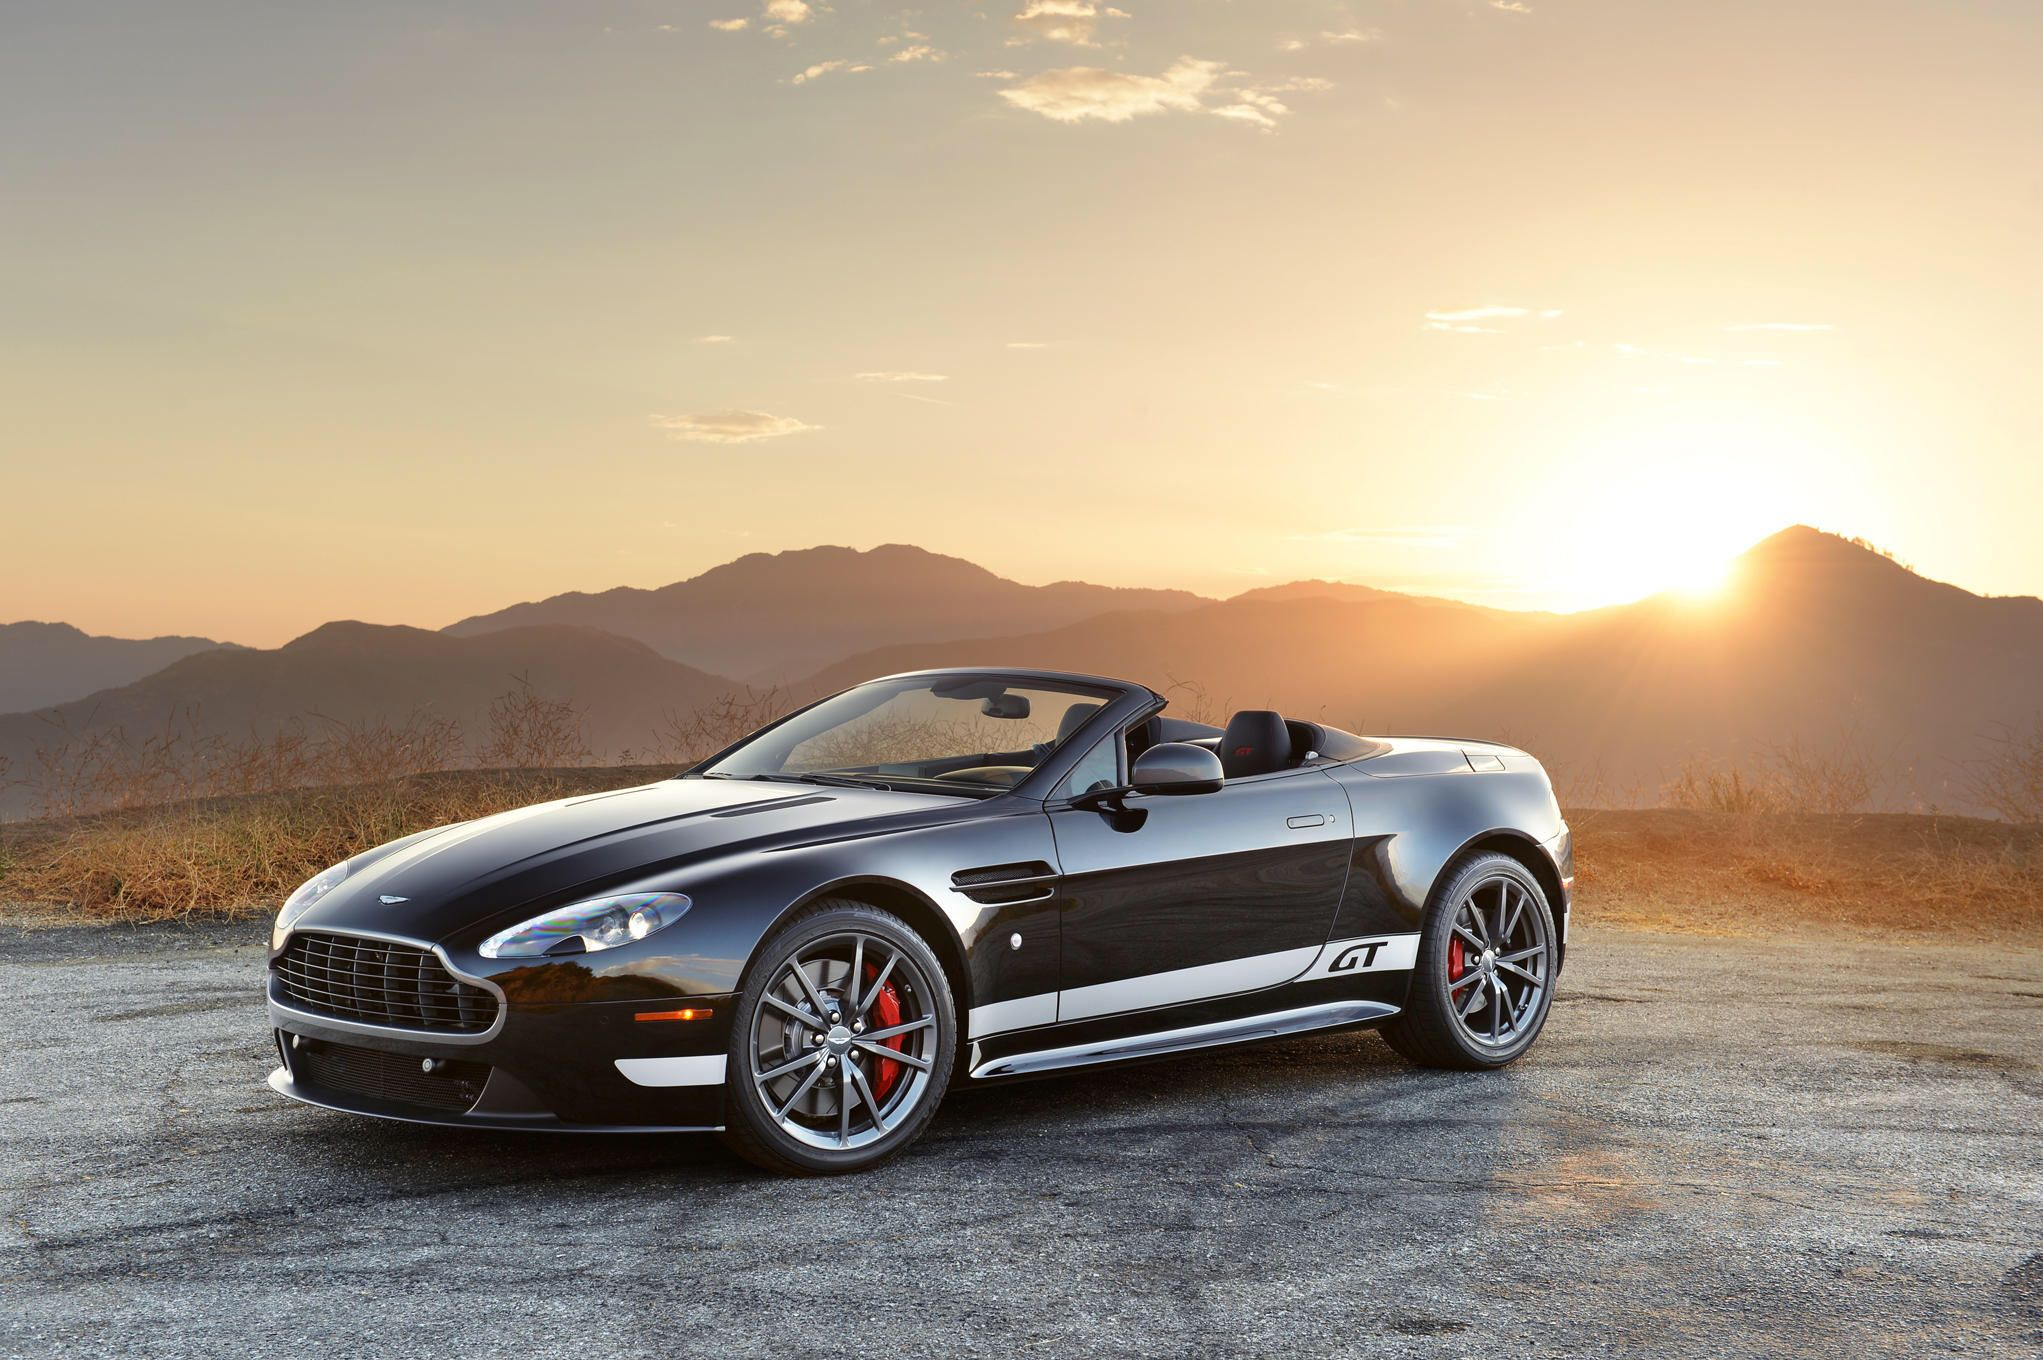 2016 Aston Martin V8 Vantage Gt First Drive Review Aston Martin V8 Aston Martin Aston Martin Cars